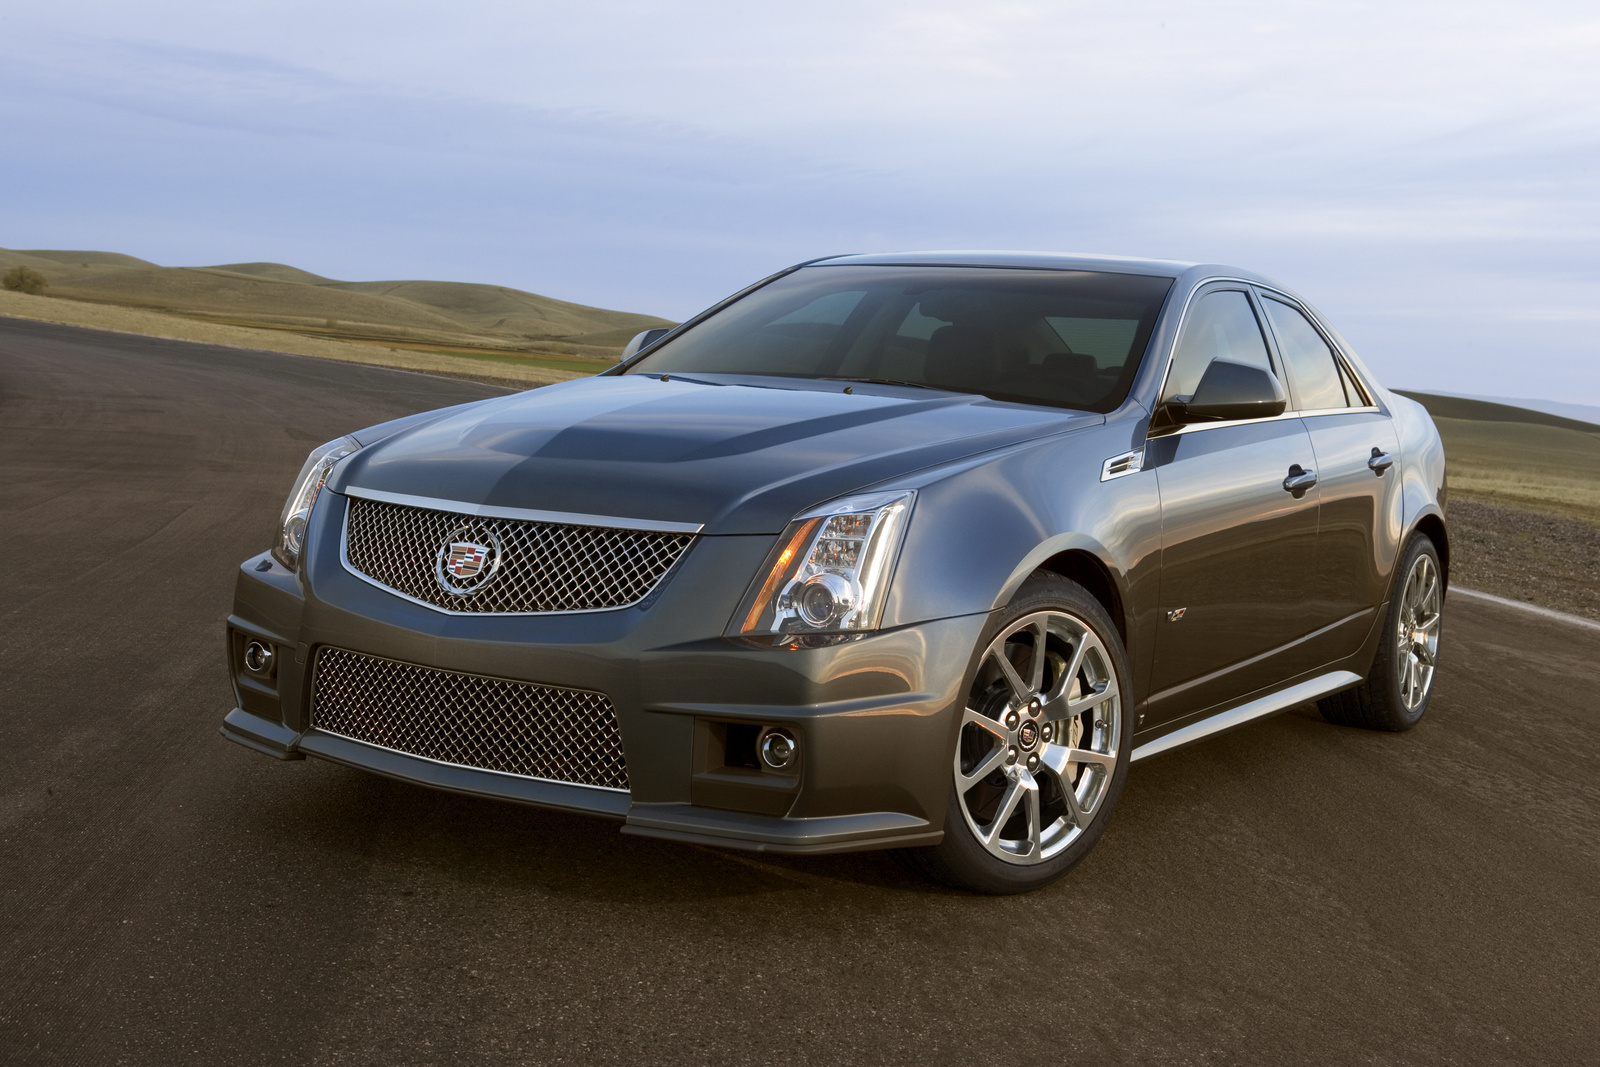 pricing cadillac gm authority cts ats coupe sponsored img links sale blog cadilac prices for